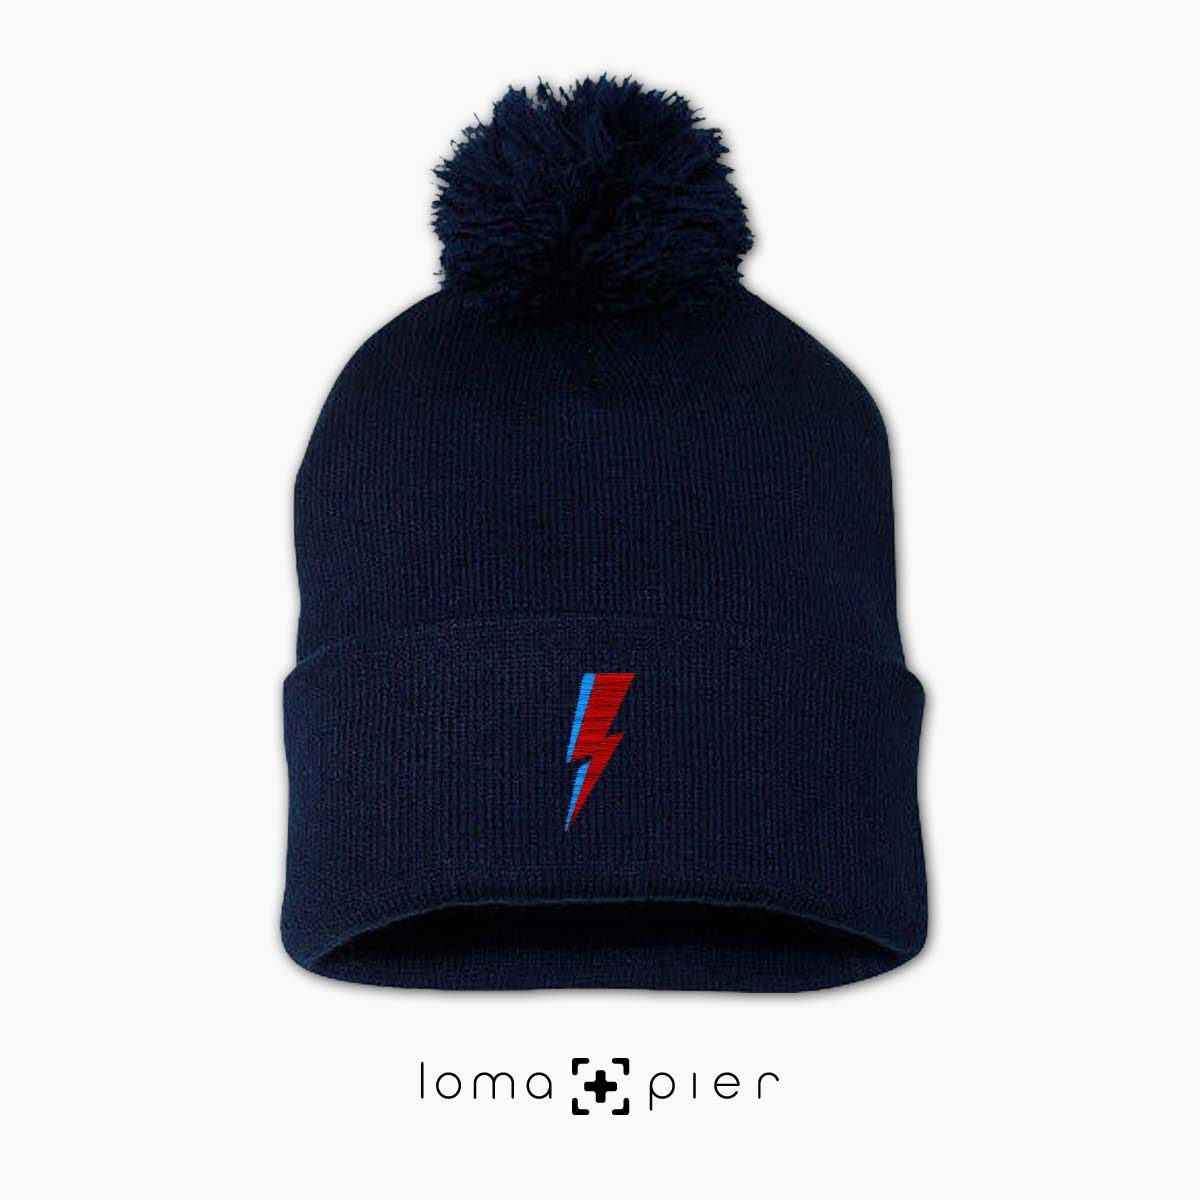 LIGHTNING BOLT icon embroidered on a navy blue pom pom beanie with multicolor thread by loma+pier hat store